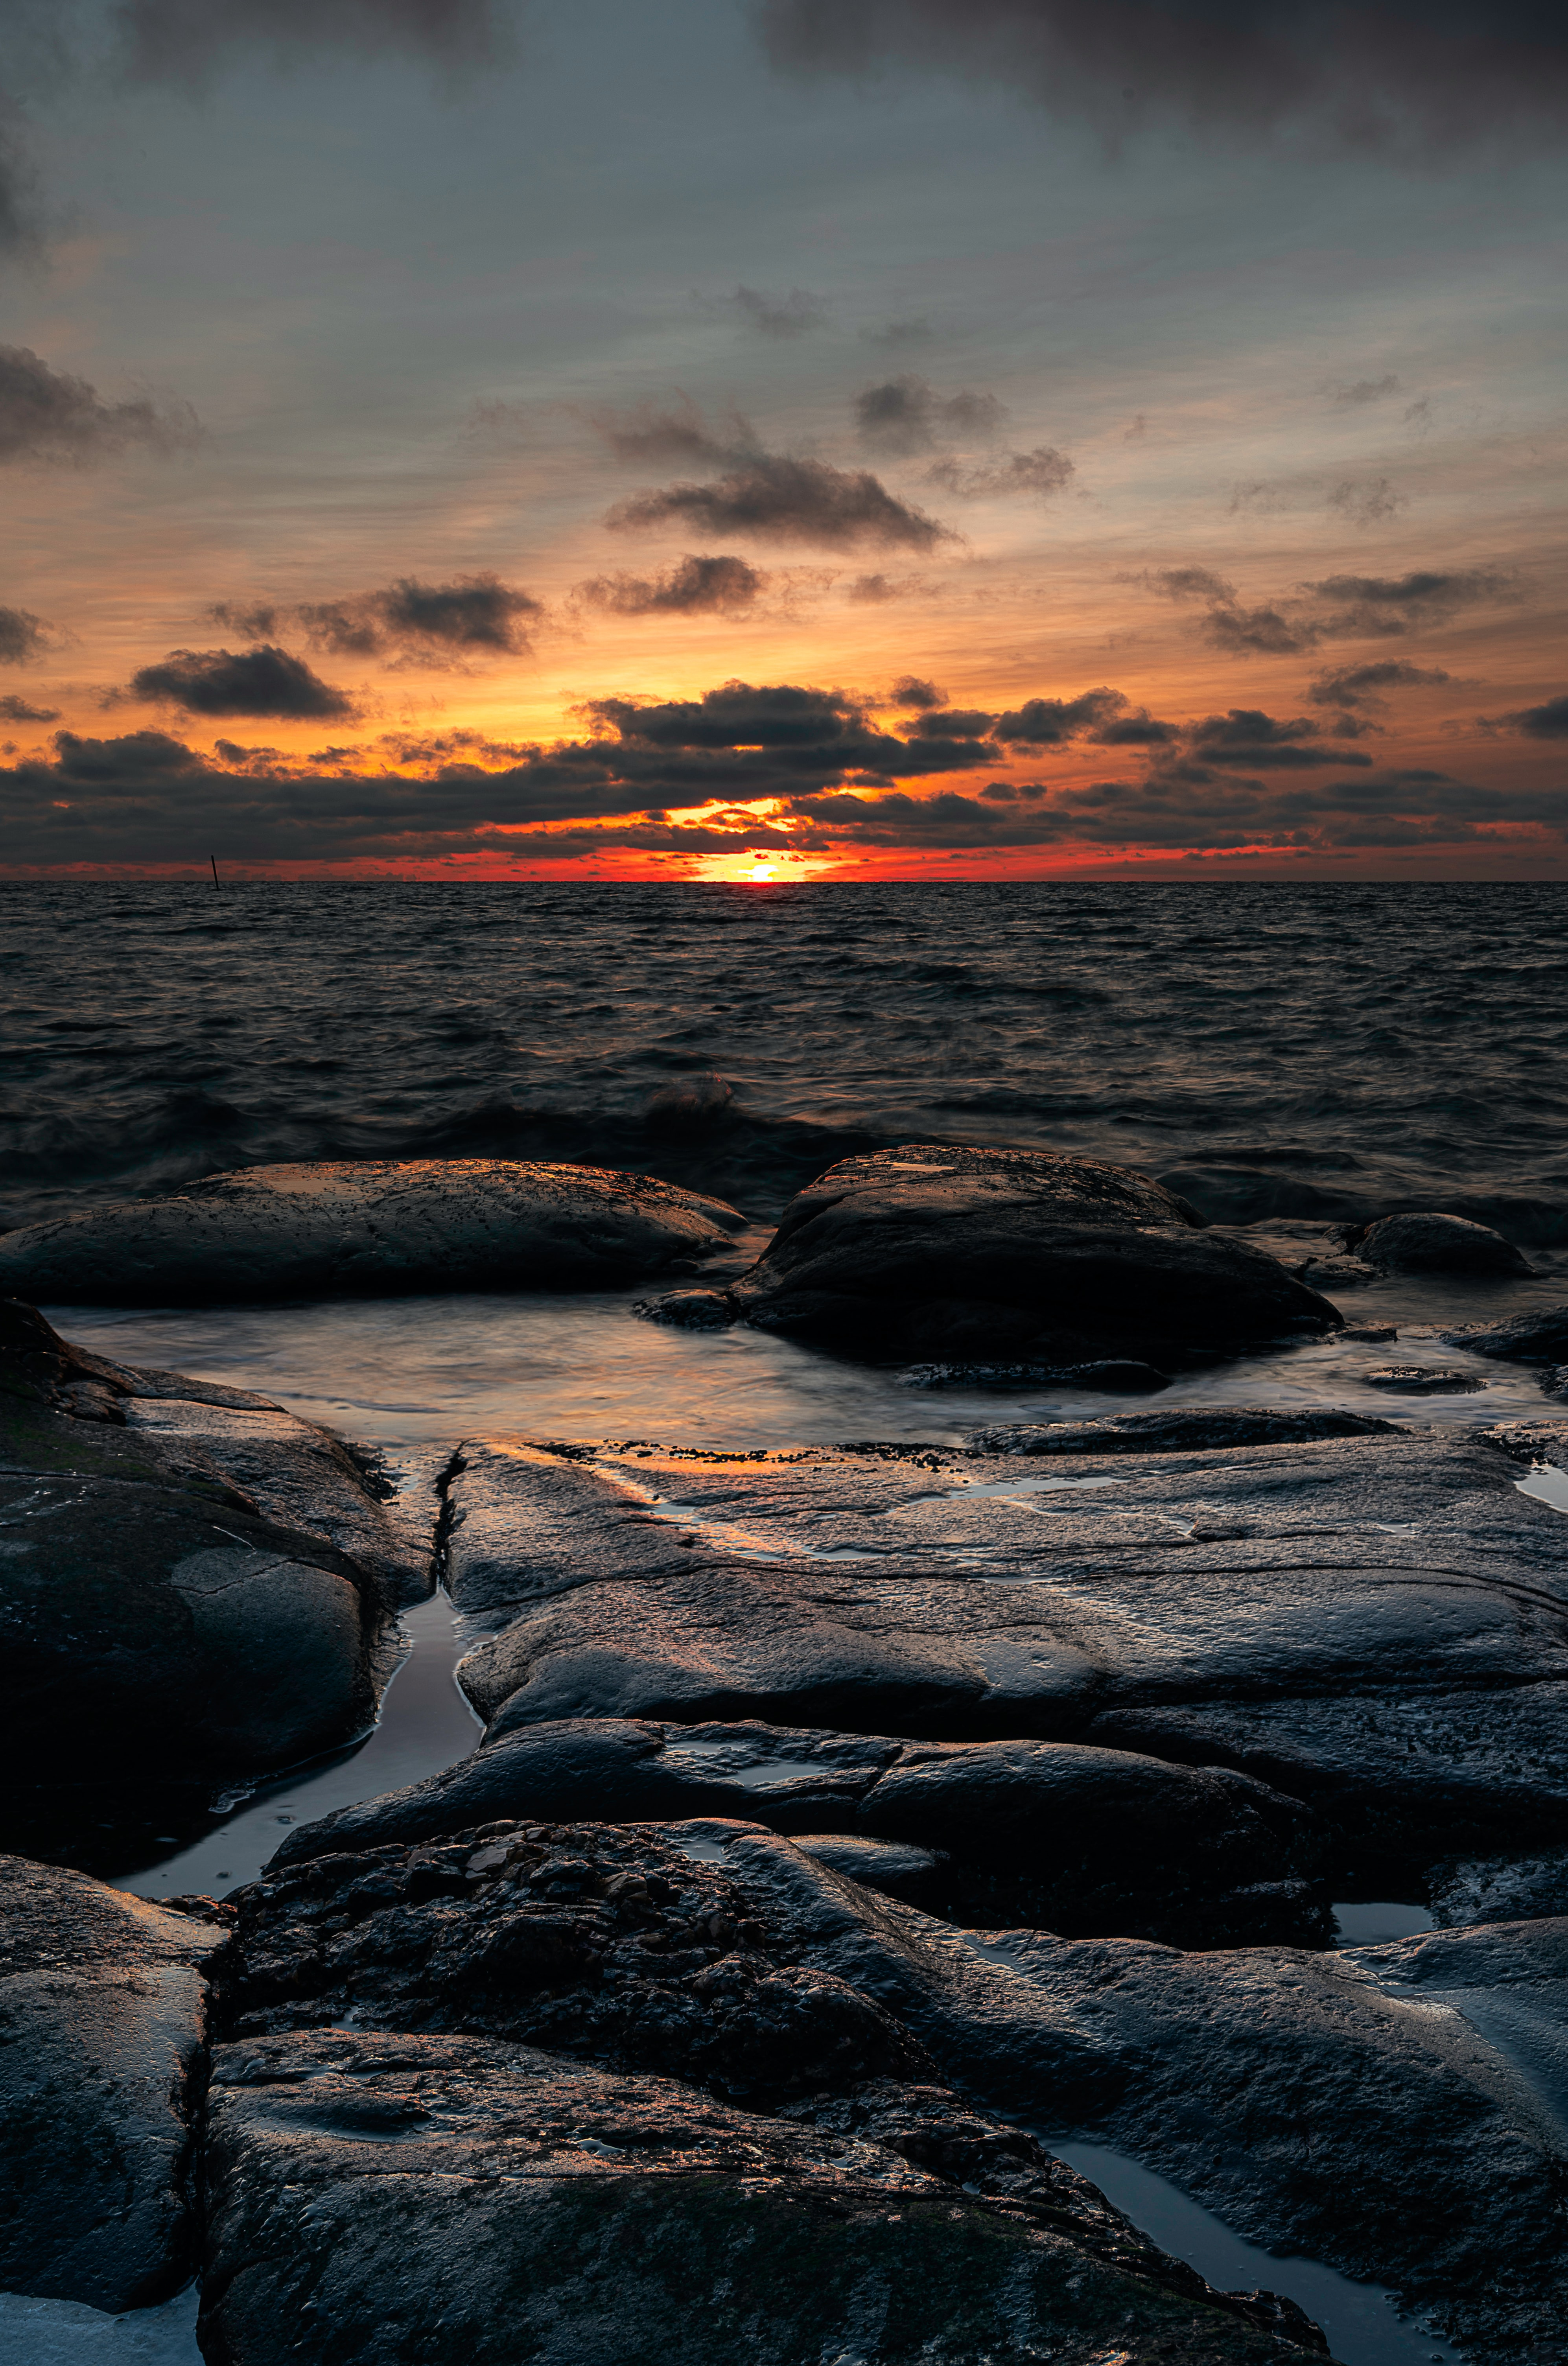 103630 download wallpaper Sea, Nature, Sunset, Twilight, Waves, Shore, Bank, Dusk screensavers and pictures for free